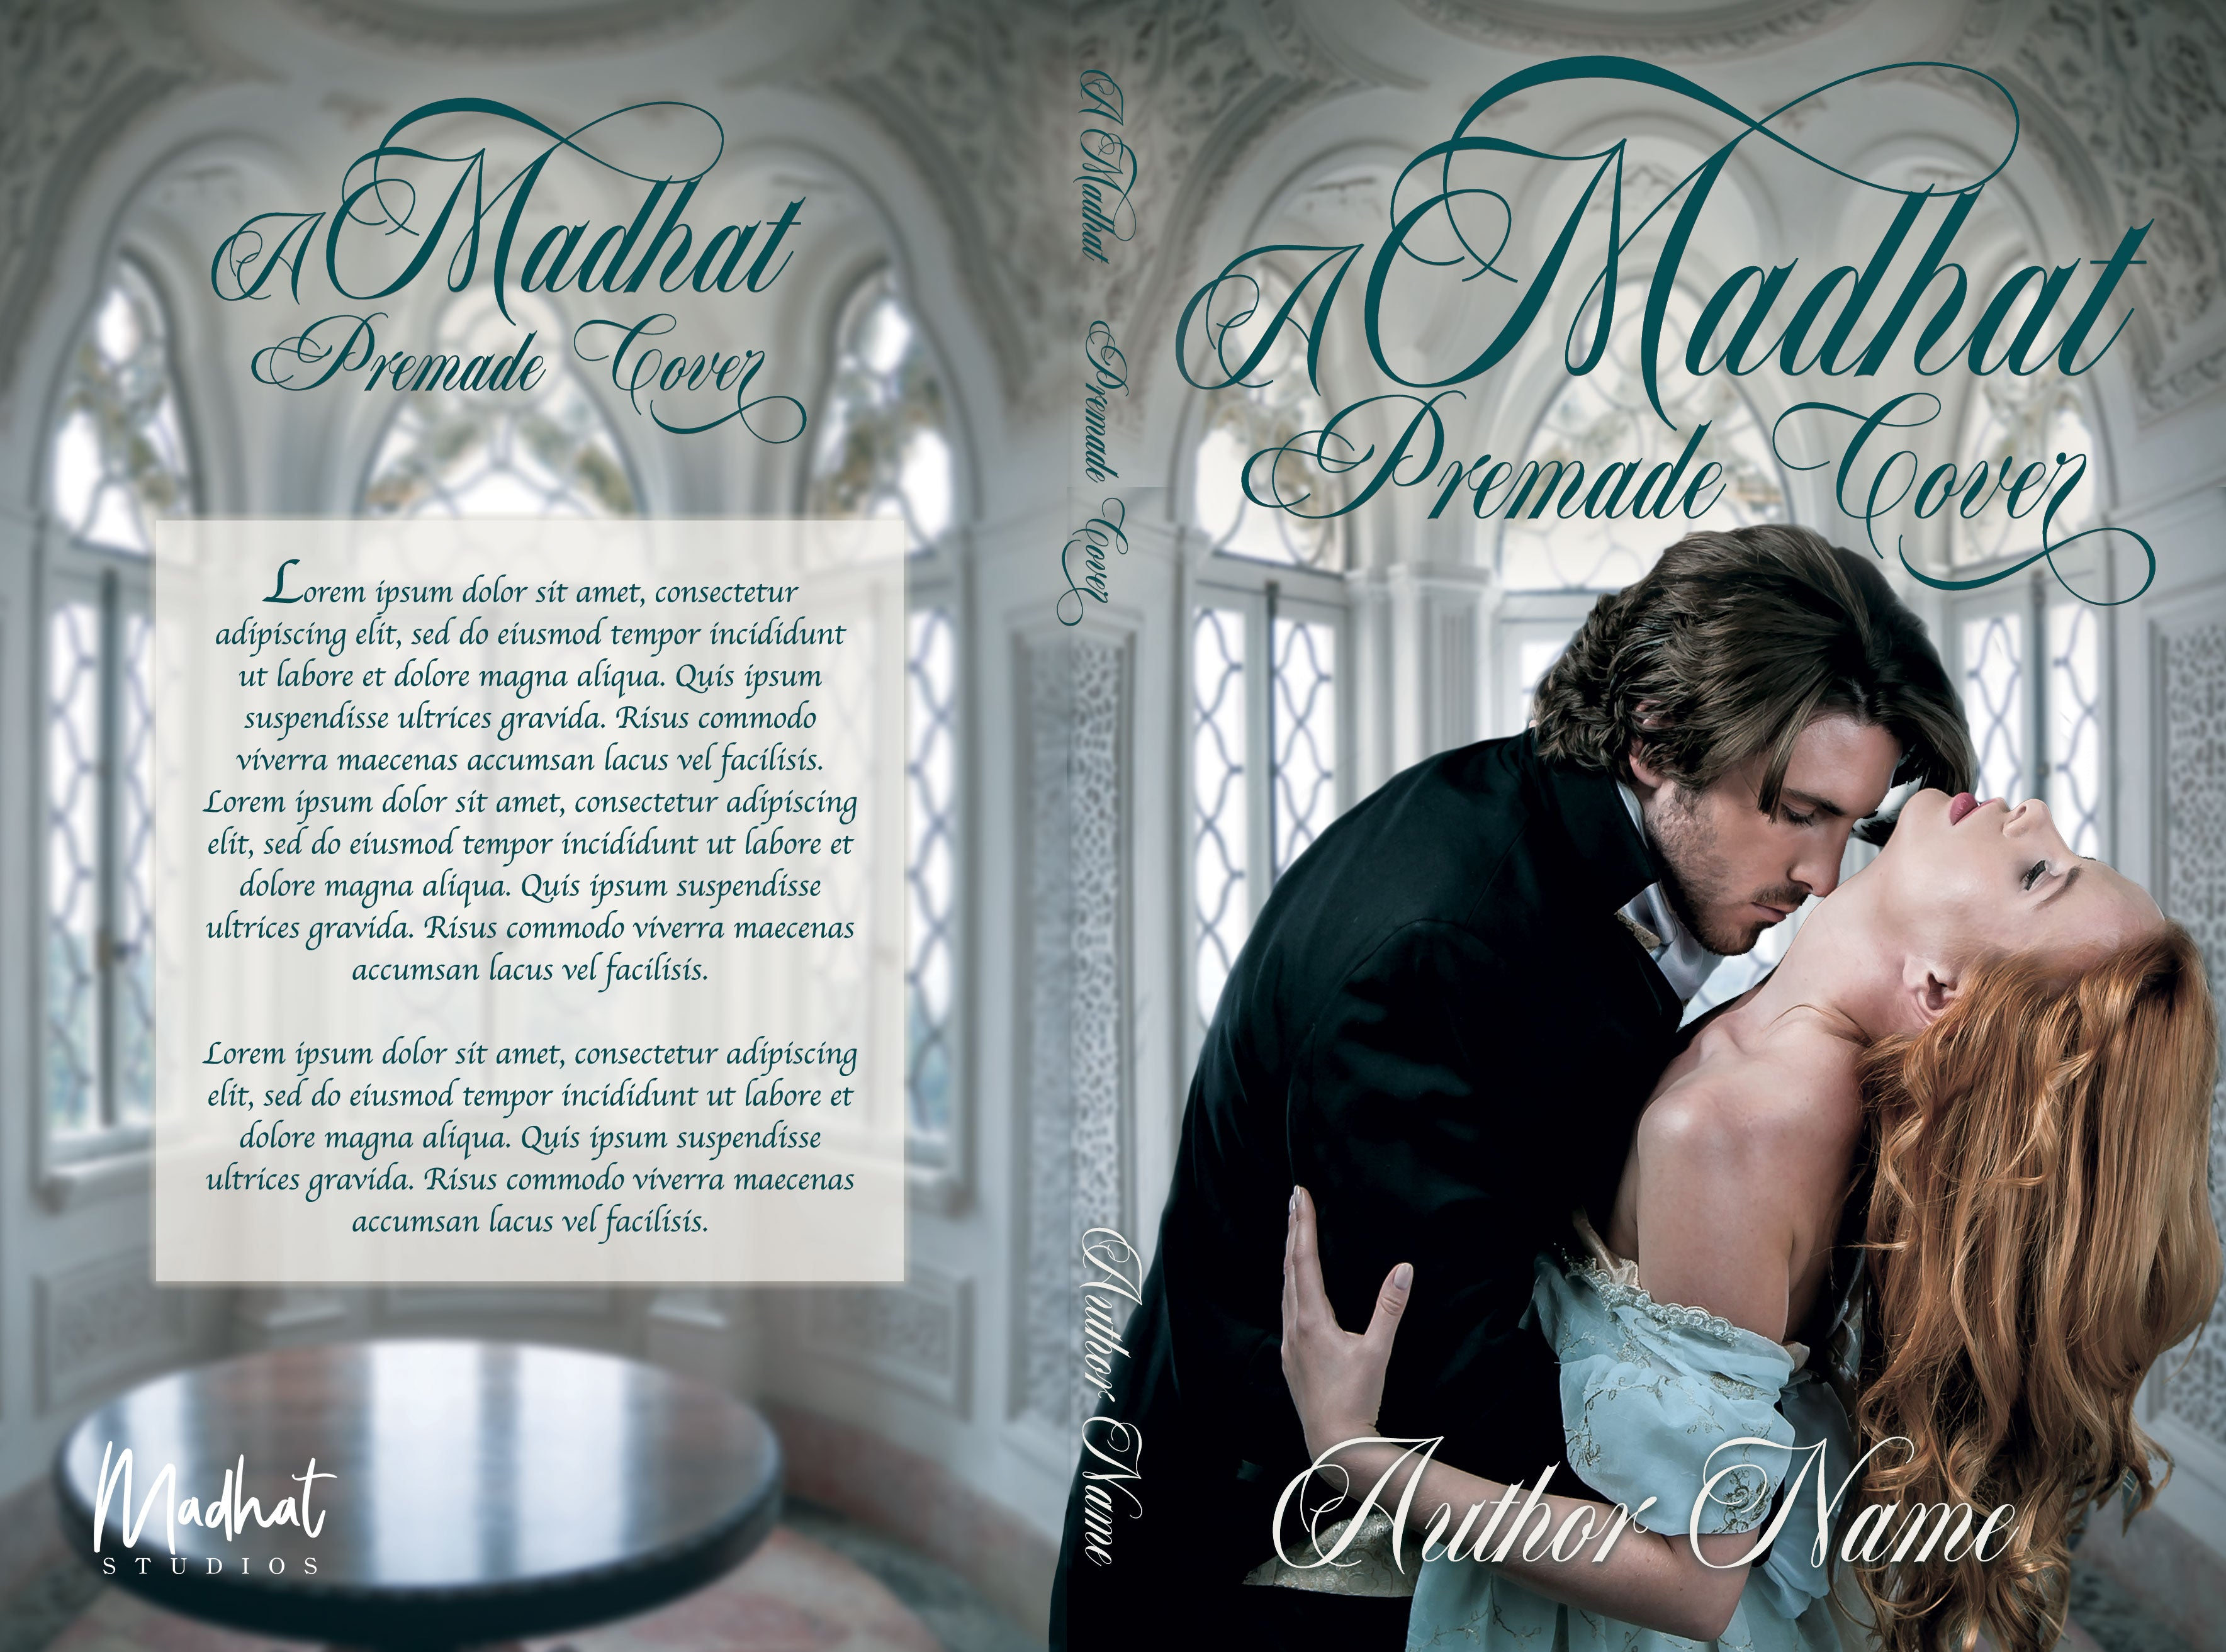 Premade Cover: Historical1111